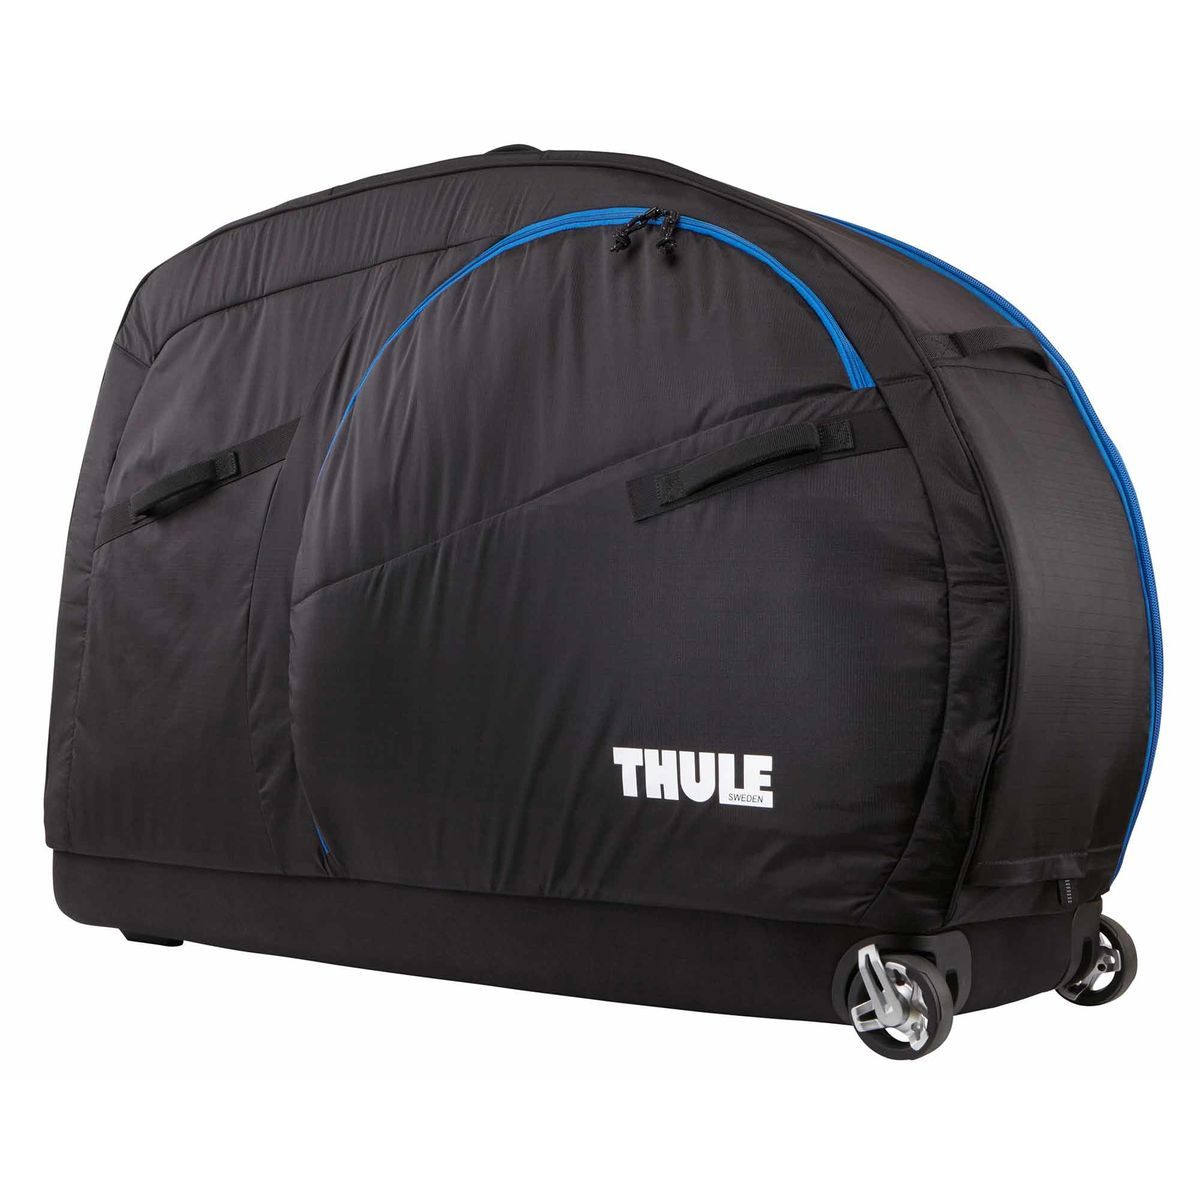 RoundTrip Traveler softshell bike bag